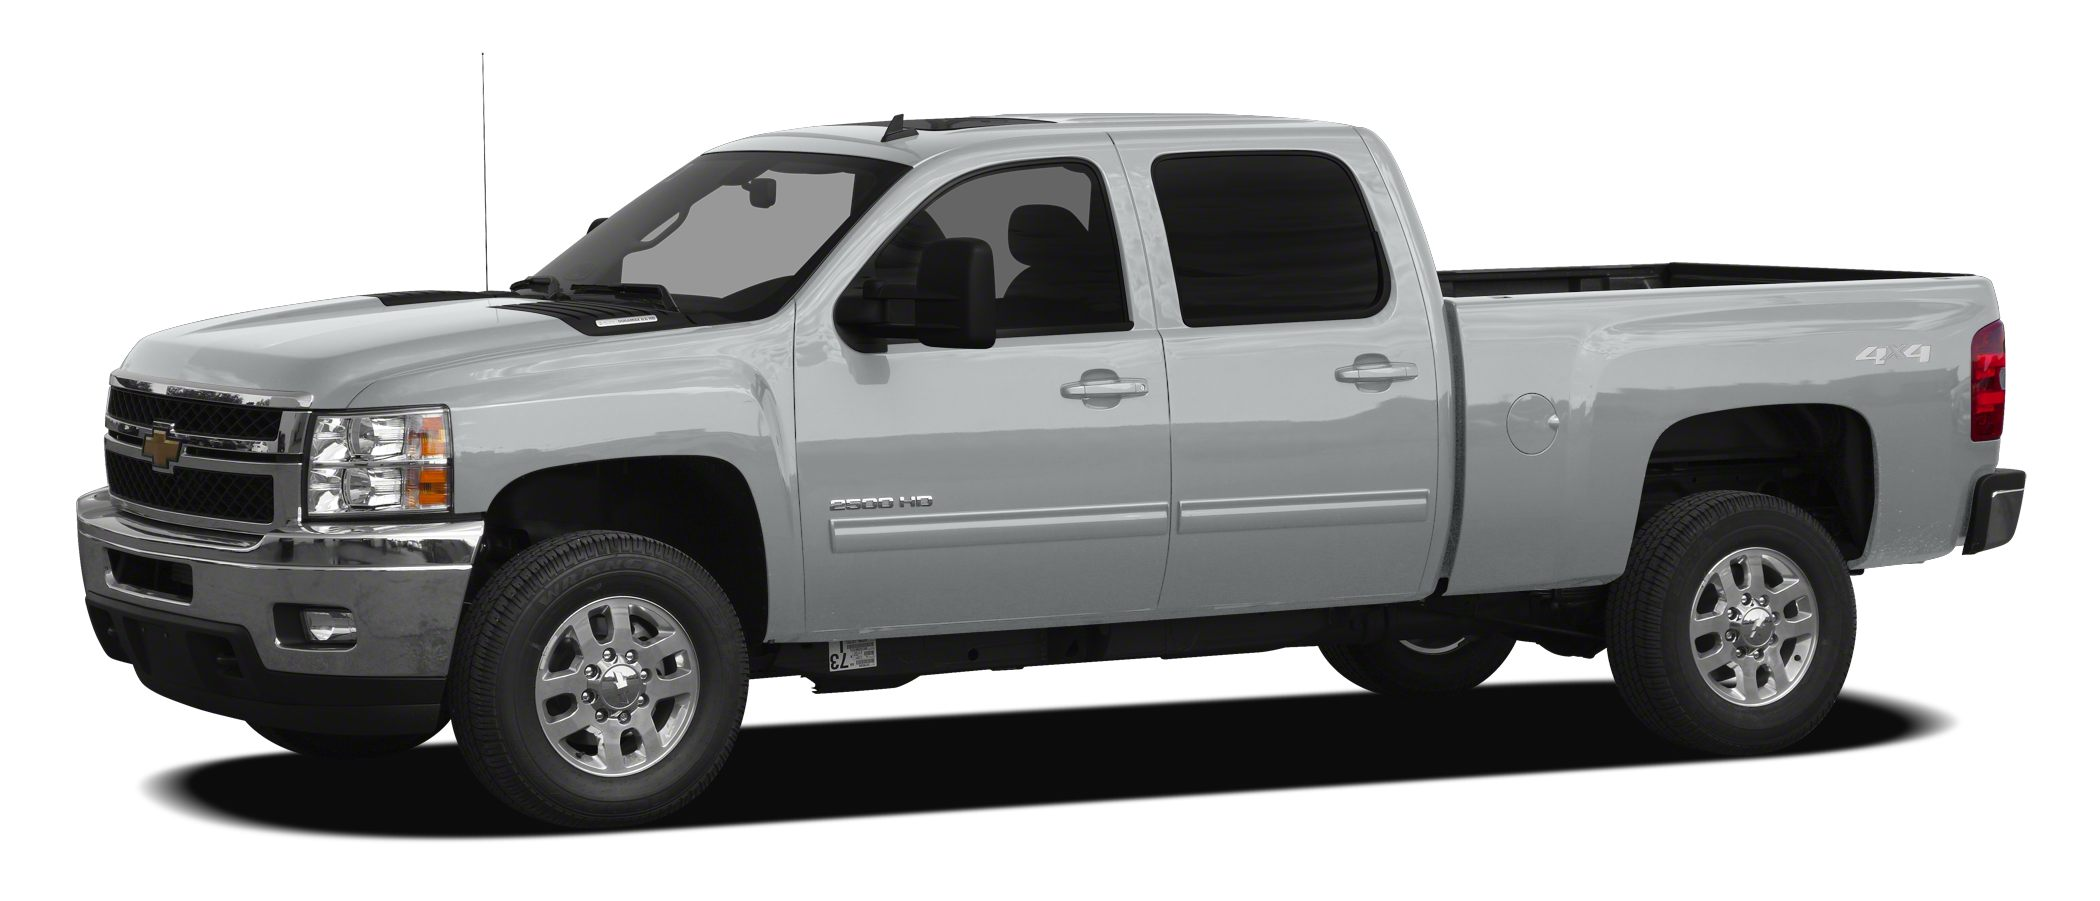 2012 Chevrolet Silverado 2500HD LTZ Excellent Condition GREAT MILES 49882 400 below Kelley Blu